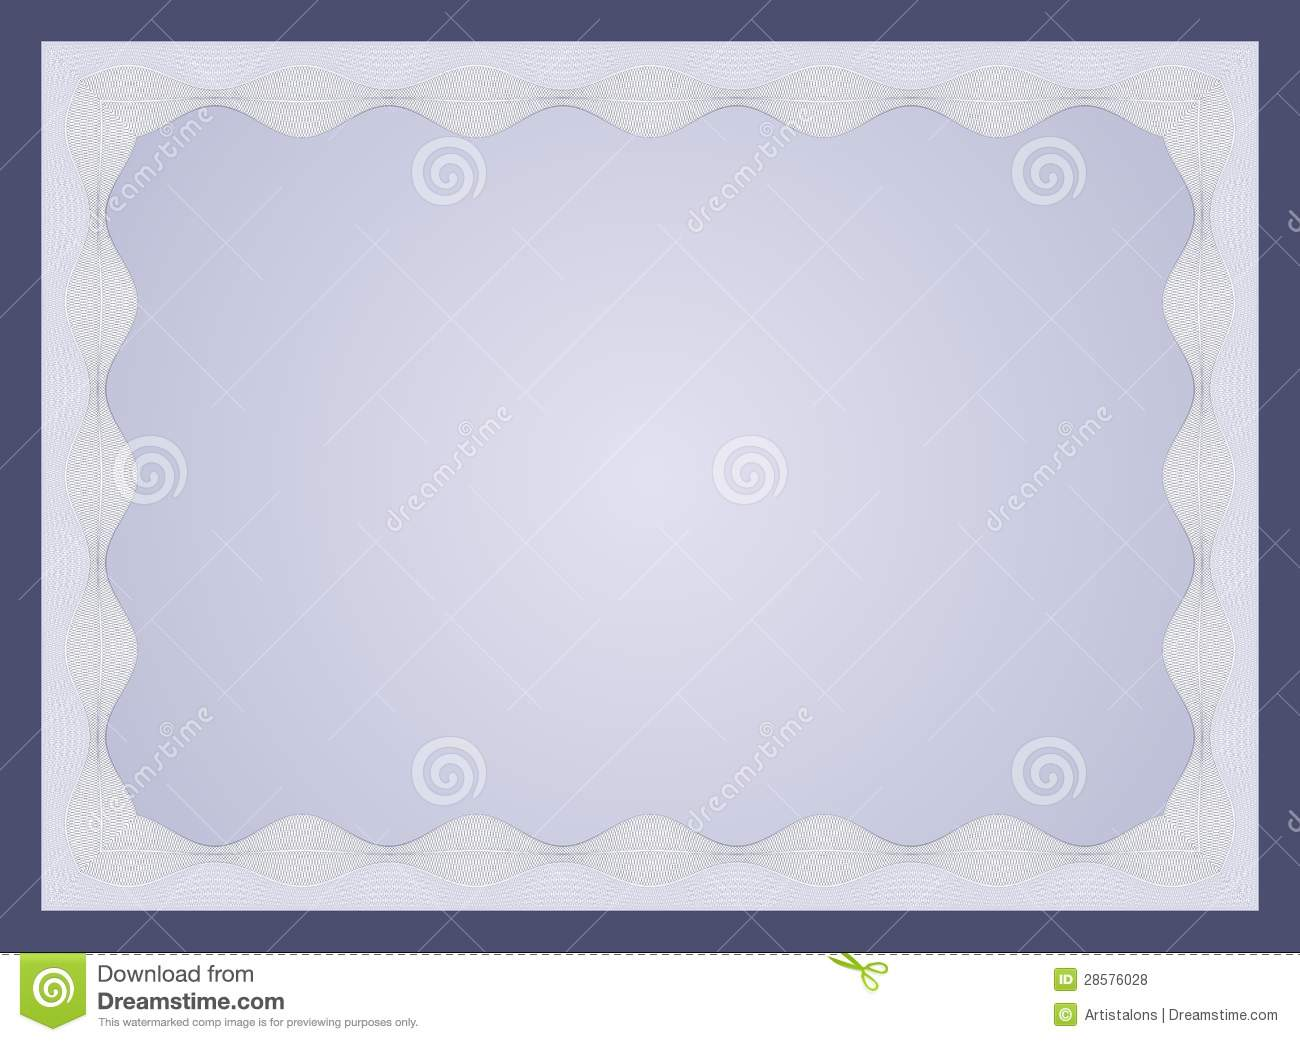 Certificate Template Royalty Free Stock Photos - Image: 28576028